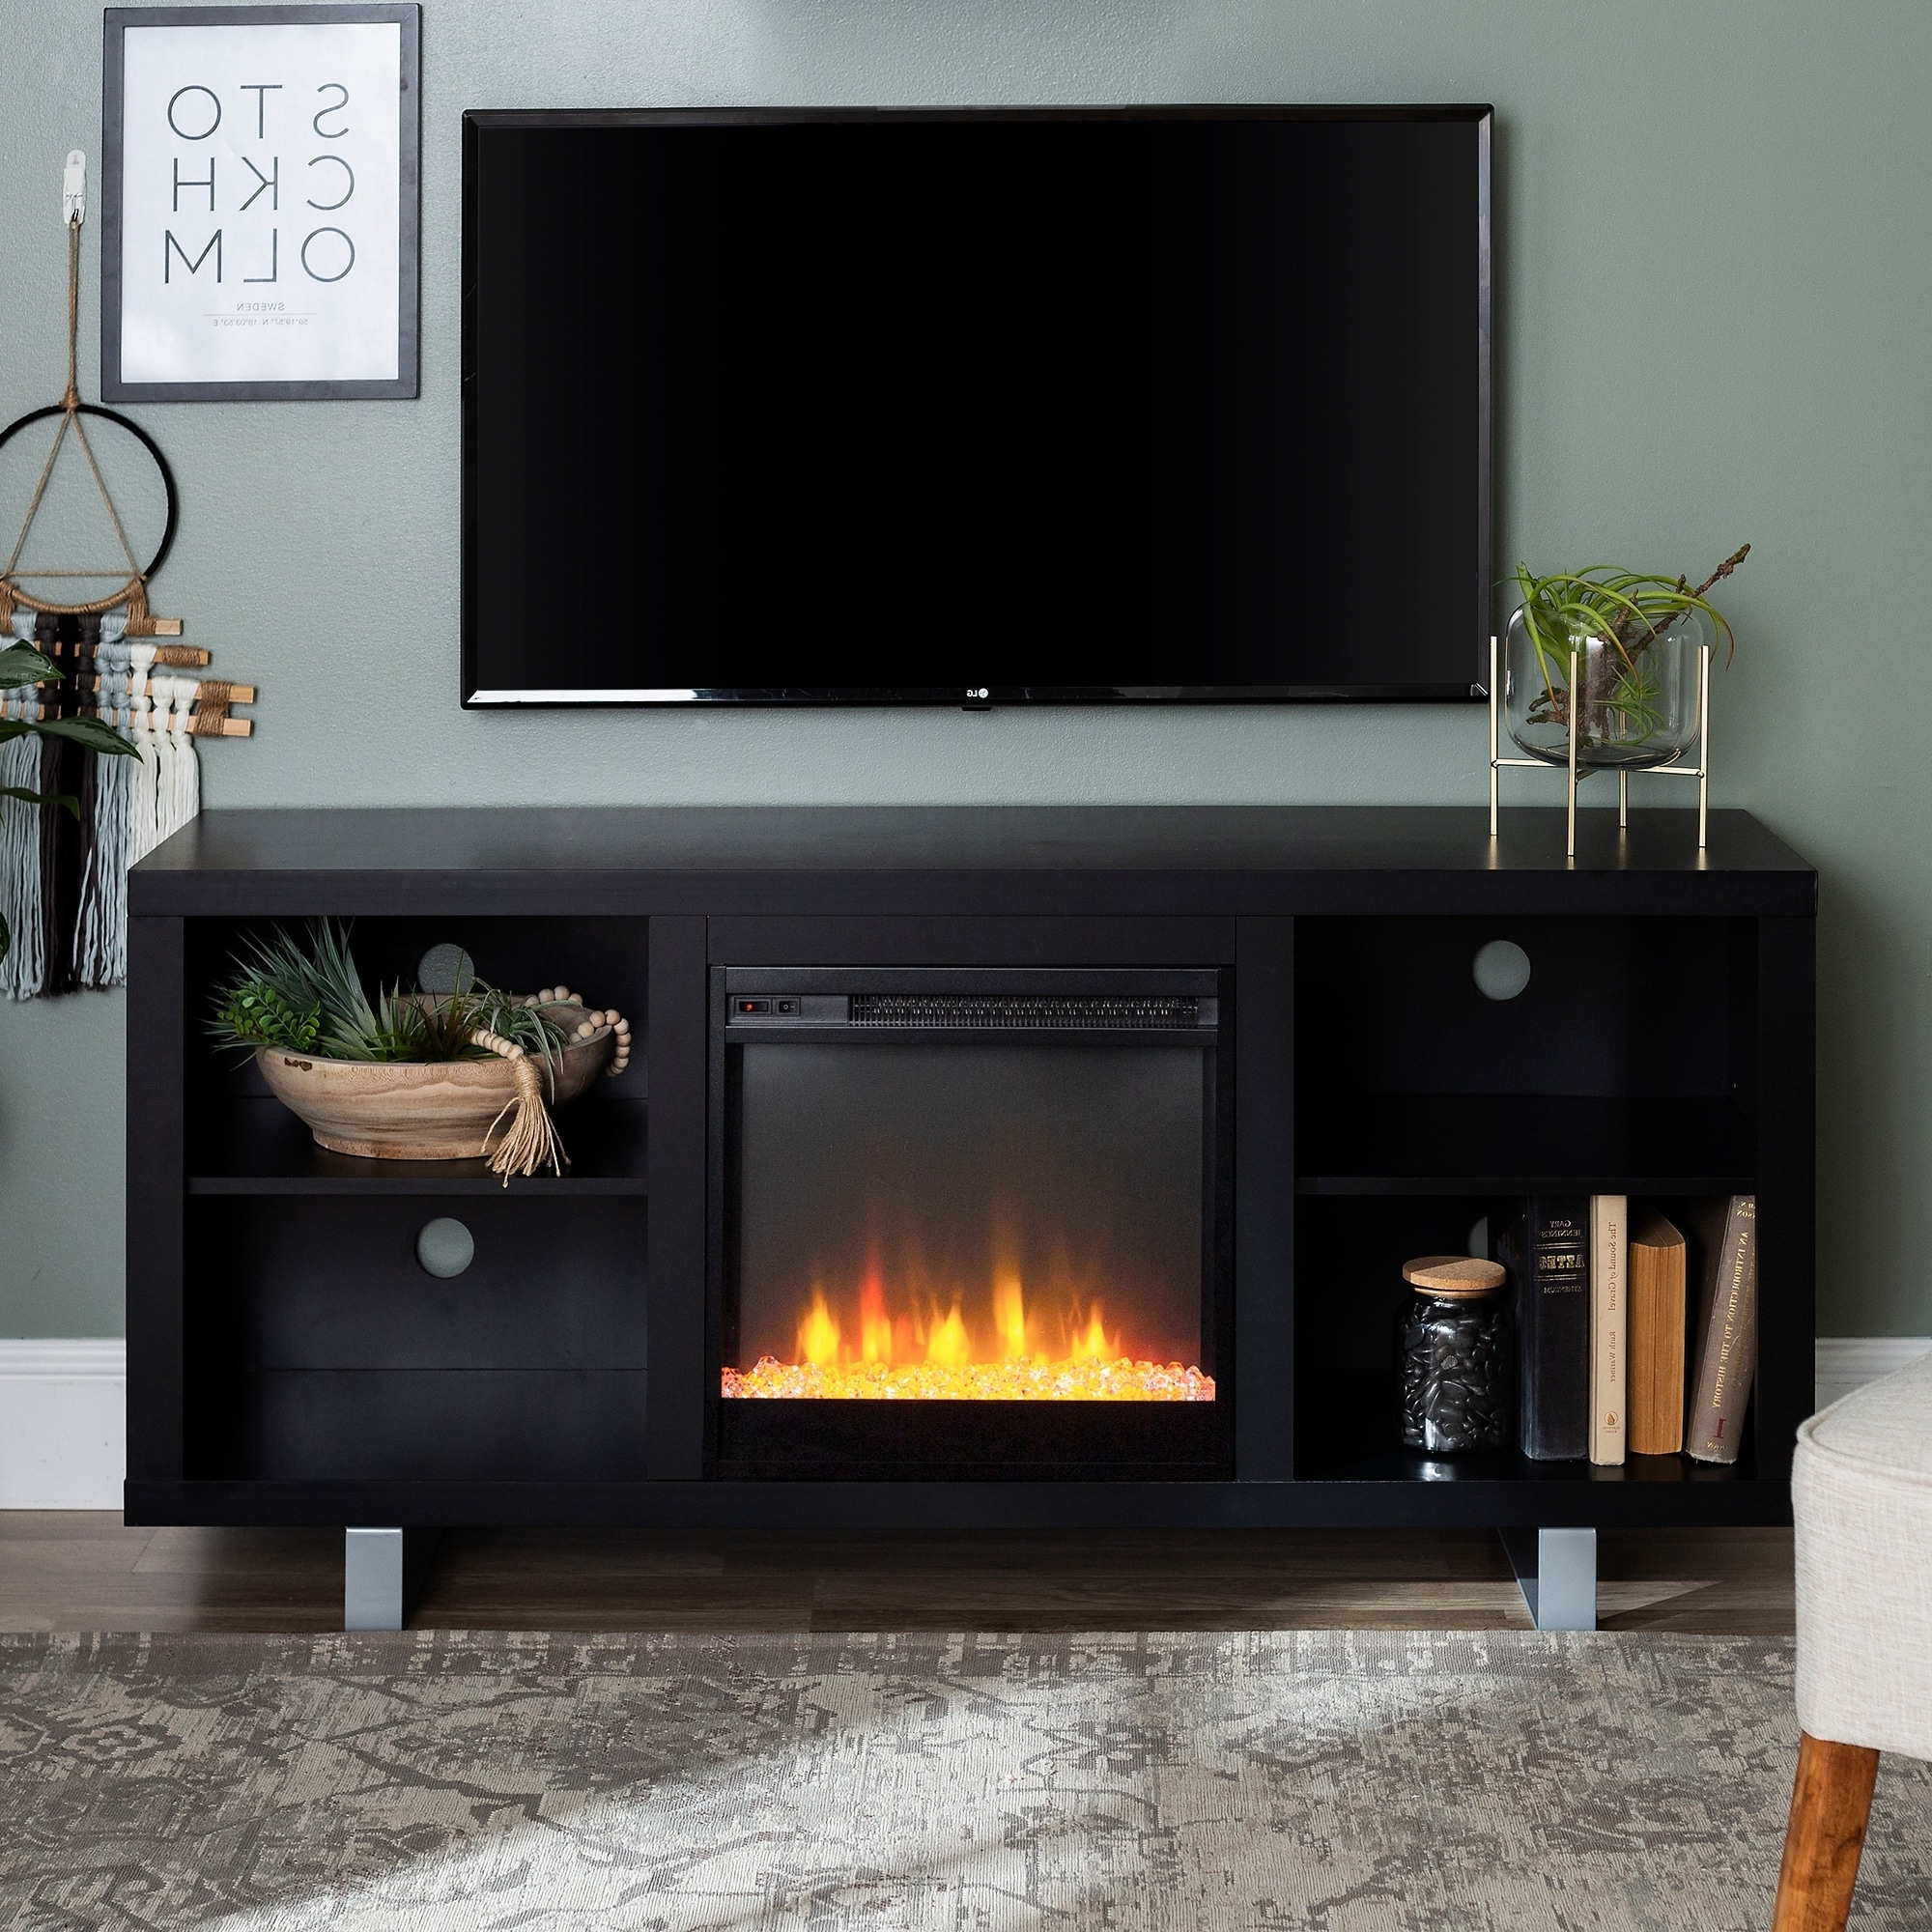 Middlebrook Designs 58 Inch Modern Fireplace Tv Stand Inside Simple Open Storage Shelf Corner Tv Stands (View 6 of 20)